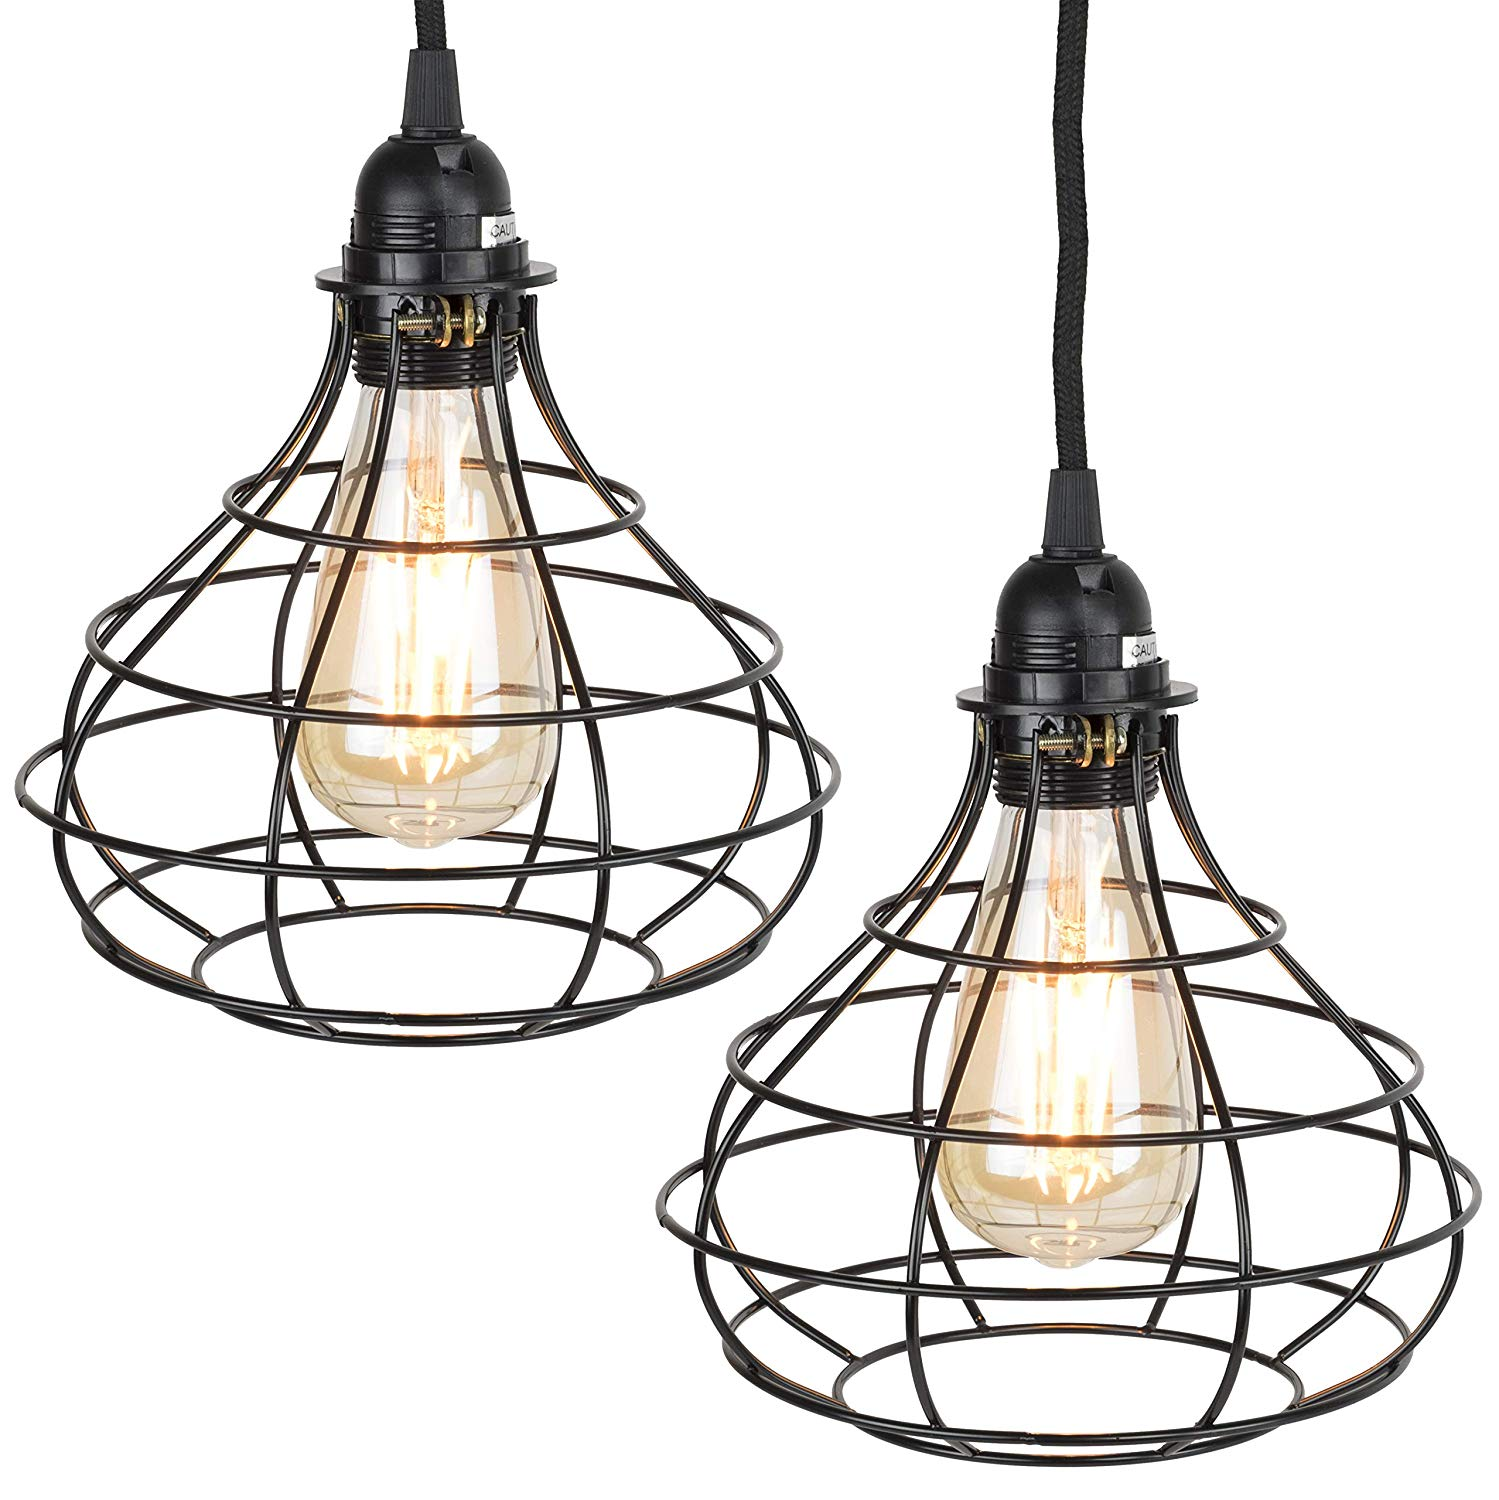 cheap switch cage find switch cage deals on line at alibaba Large Wooden Dove Cages get quotations rustic state industrial cage pendant light with 15 black fabric plug in cord and